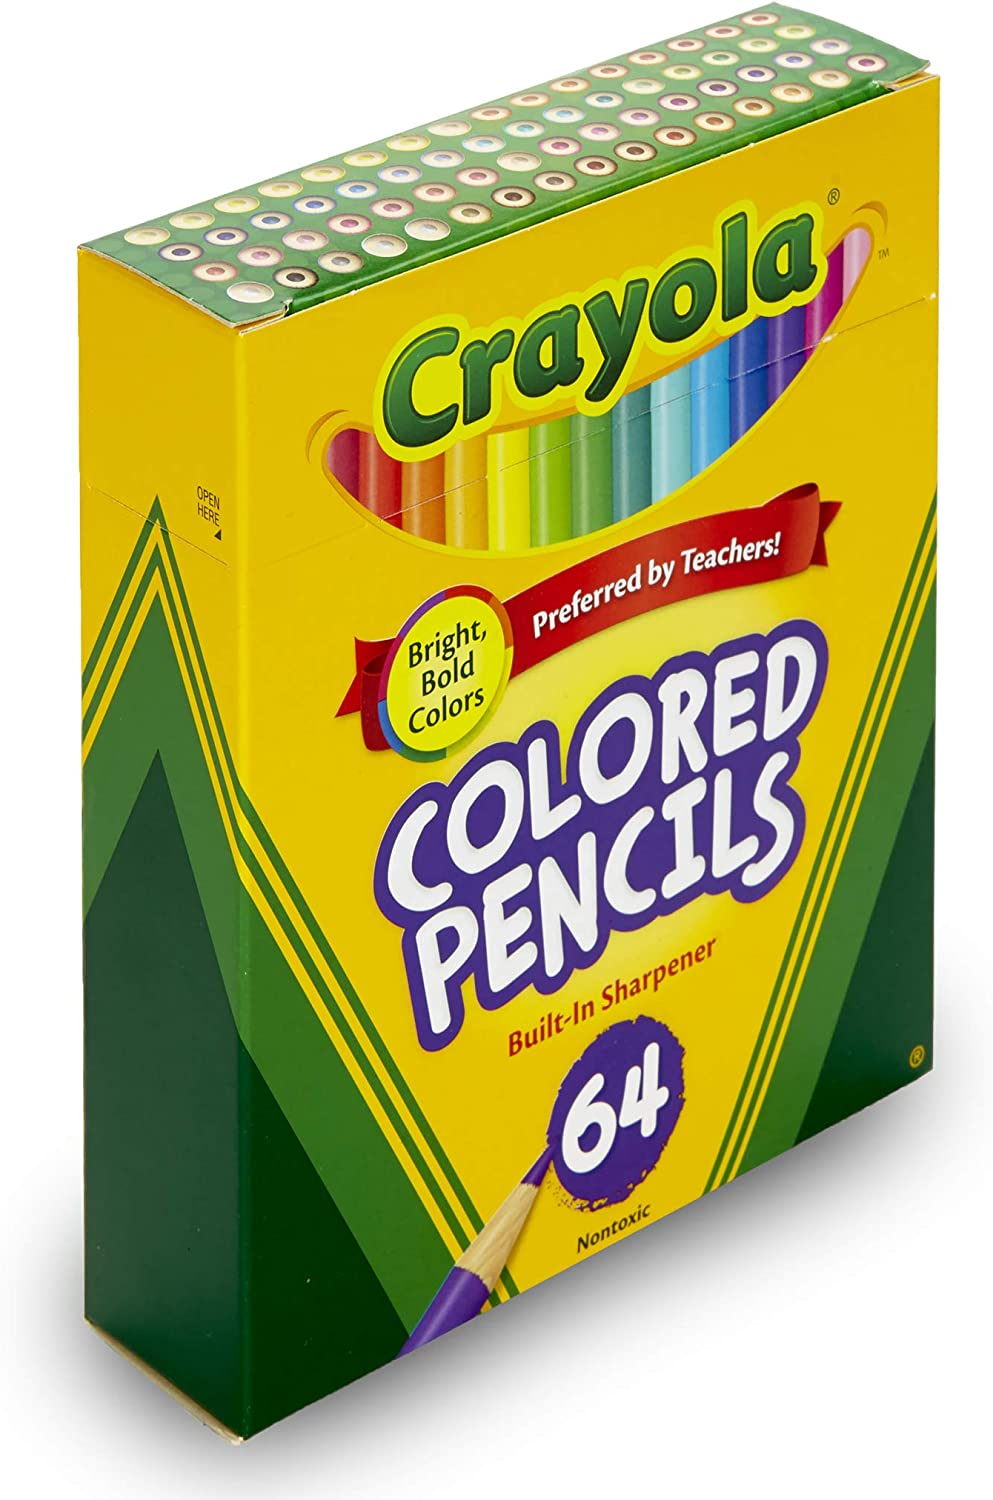 Crayola Mini Colored Pencils in Assorted Colors, Coloring Supplies for Kids, 64ct: Toys & Games